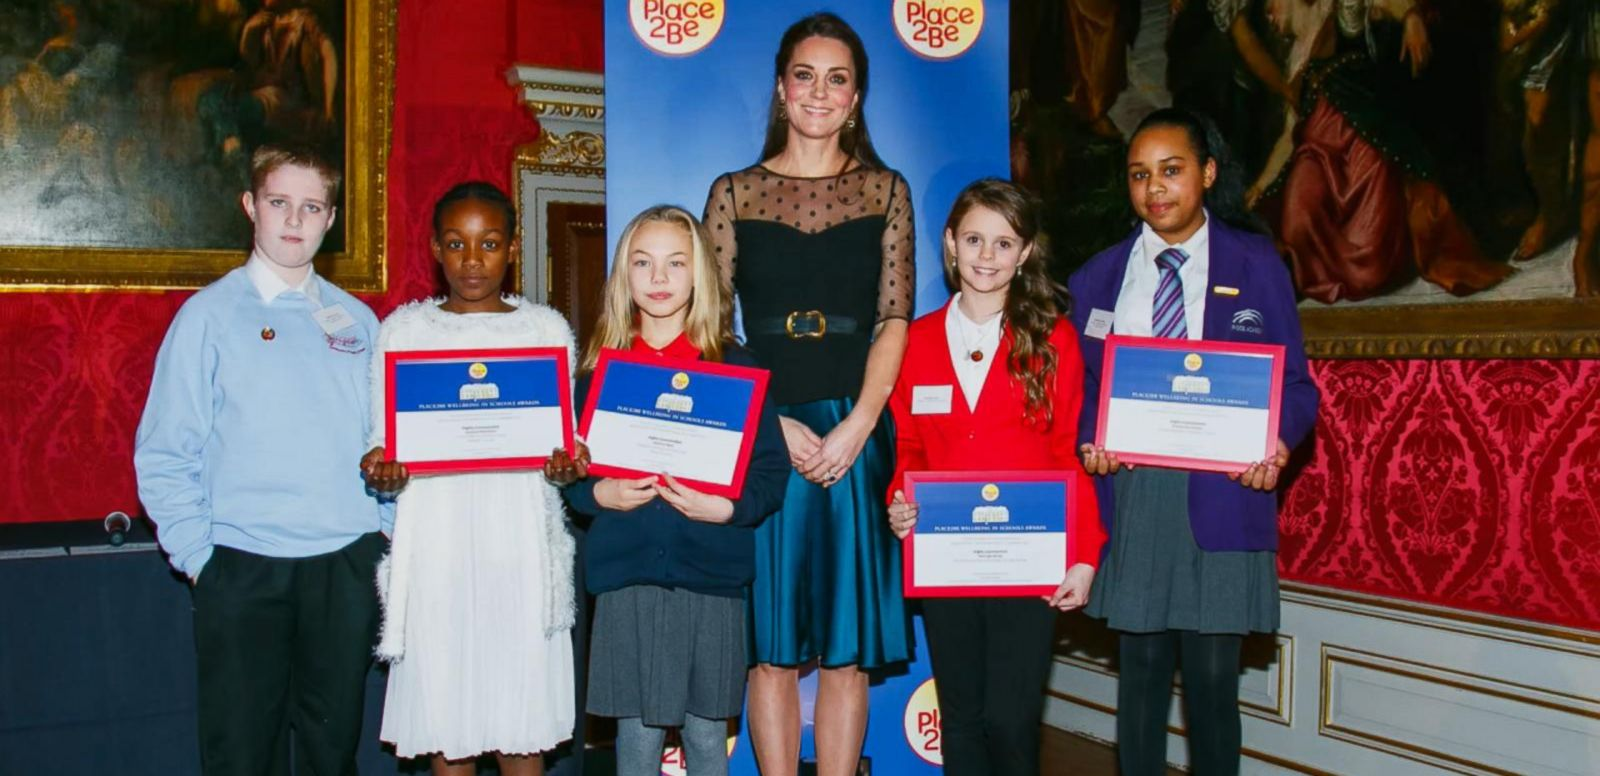 VIDEO: Duchess Kate Promotes Child Mental Health in New PSA